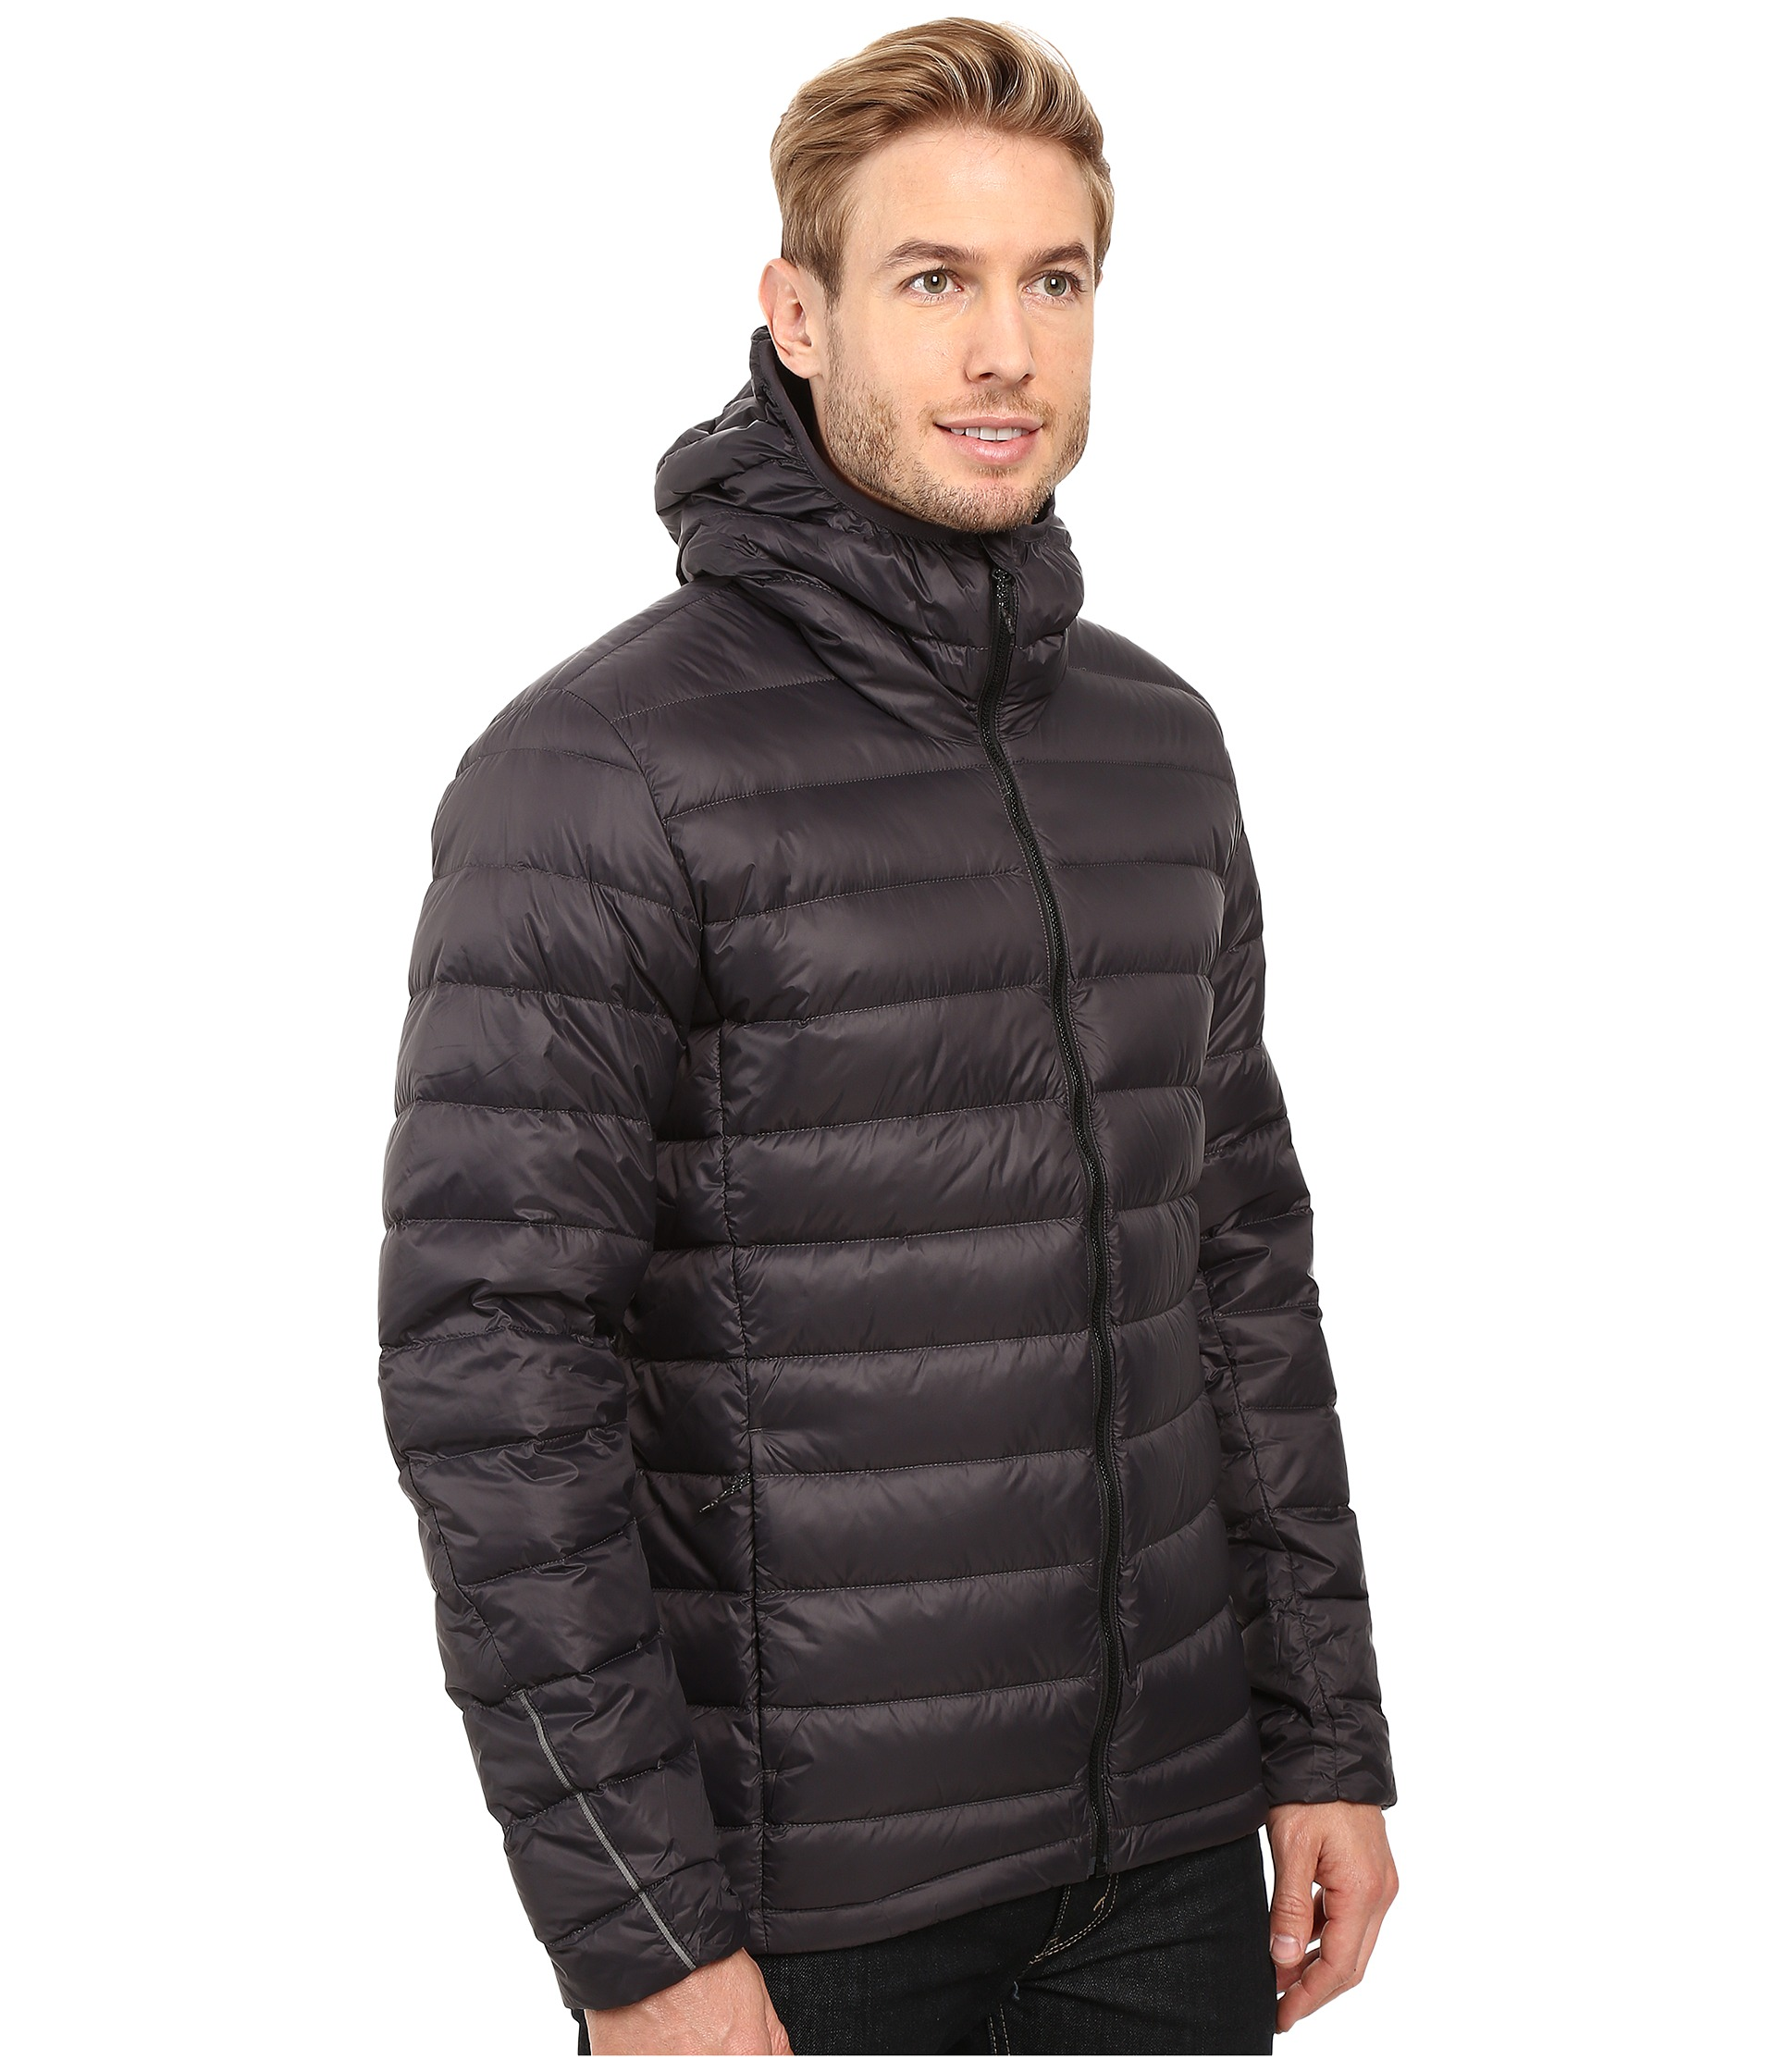 Down hooded jacket utility black zappos com free shipping both ways